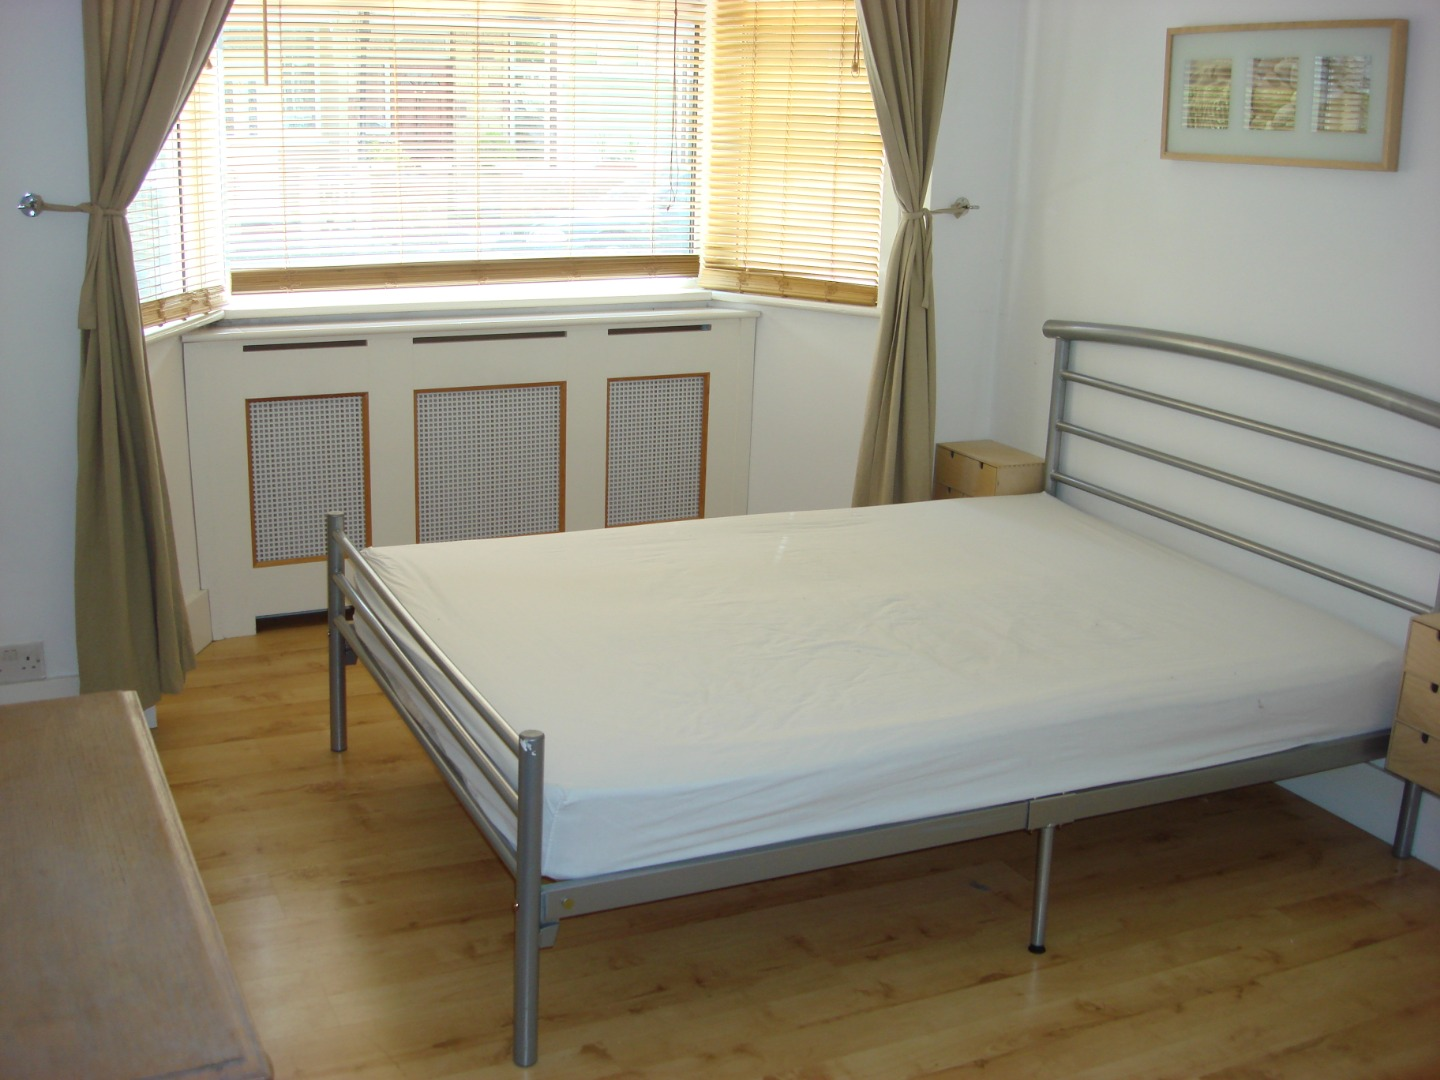 1 bed Ground Flat to rent on Clive Road - Property Image 1